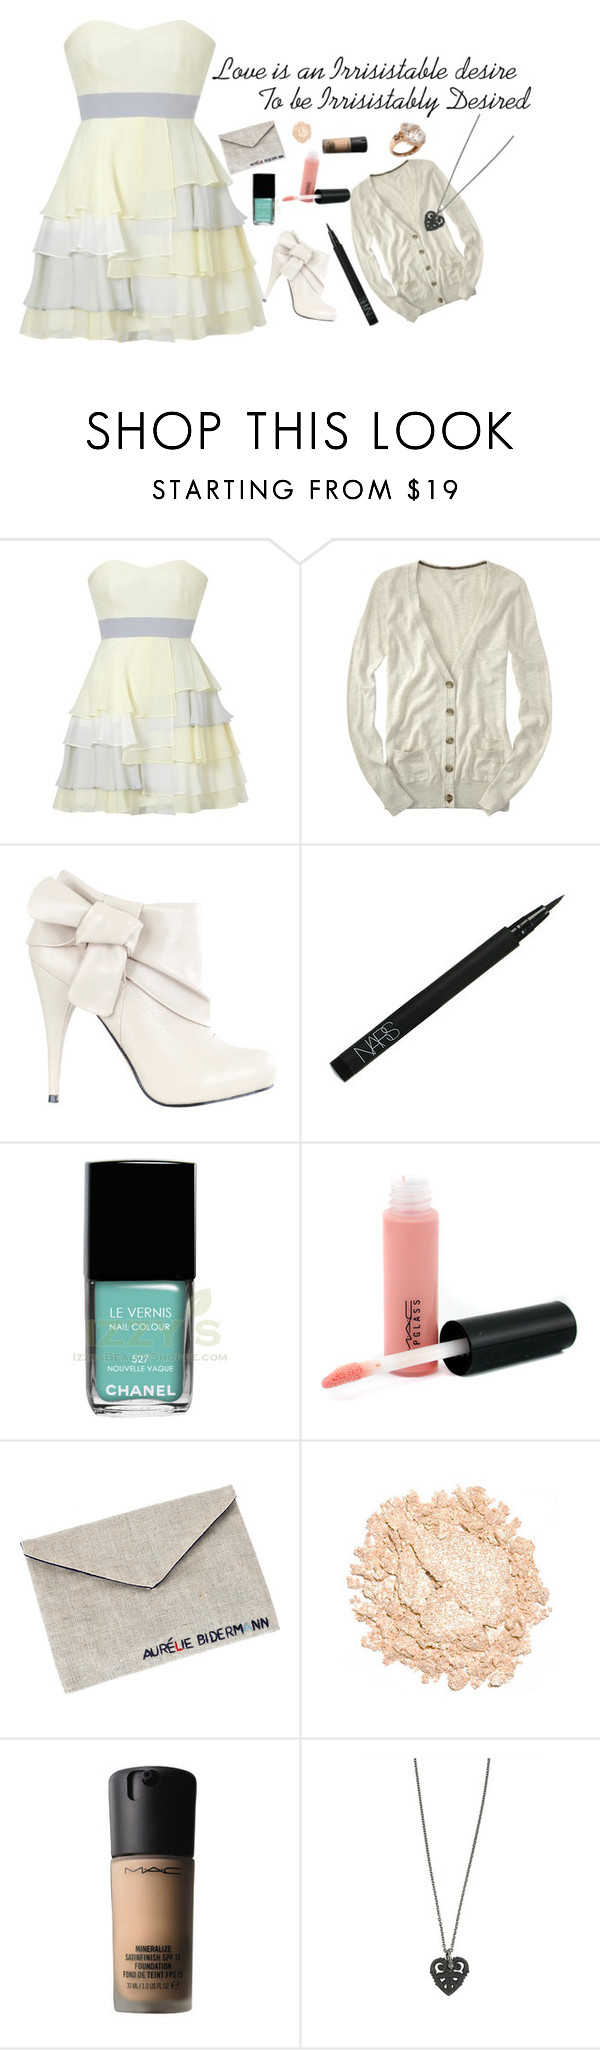 """""""170810"""" by alysonmegan ❤ liked on Polyvore featuring Aéropostale, Luella, NARS Cosmetics, Chanel, MAC Cosmetics, Aurélie Bidermann, Urban Decay, NYMPHENBURG and Pepenero"""